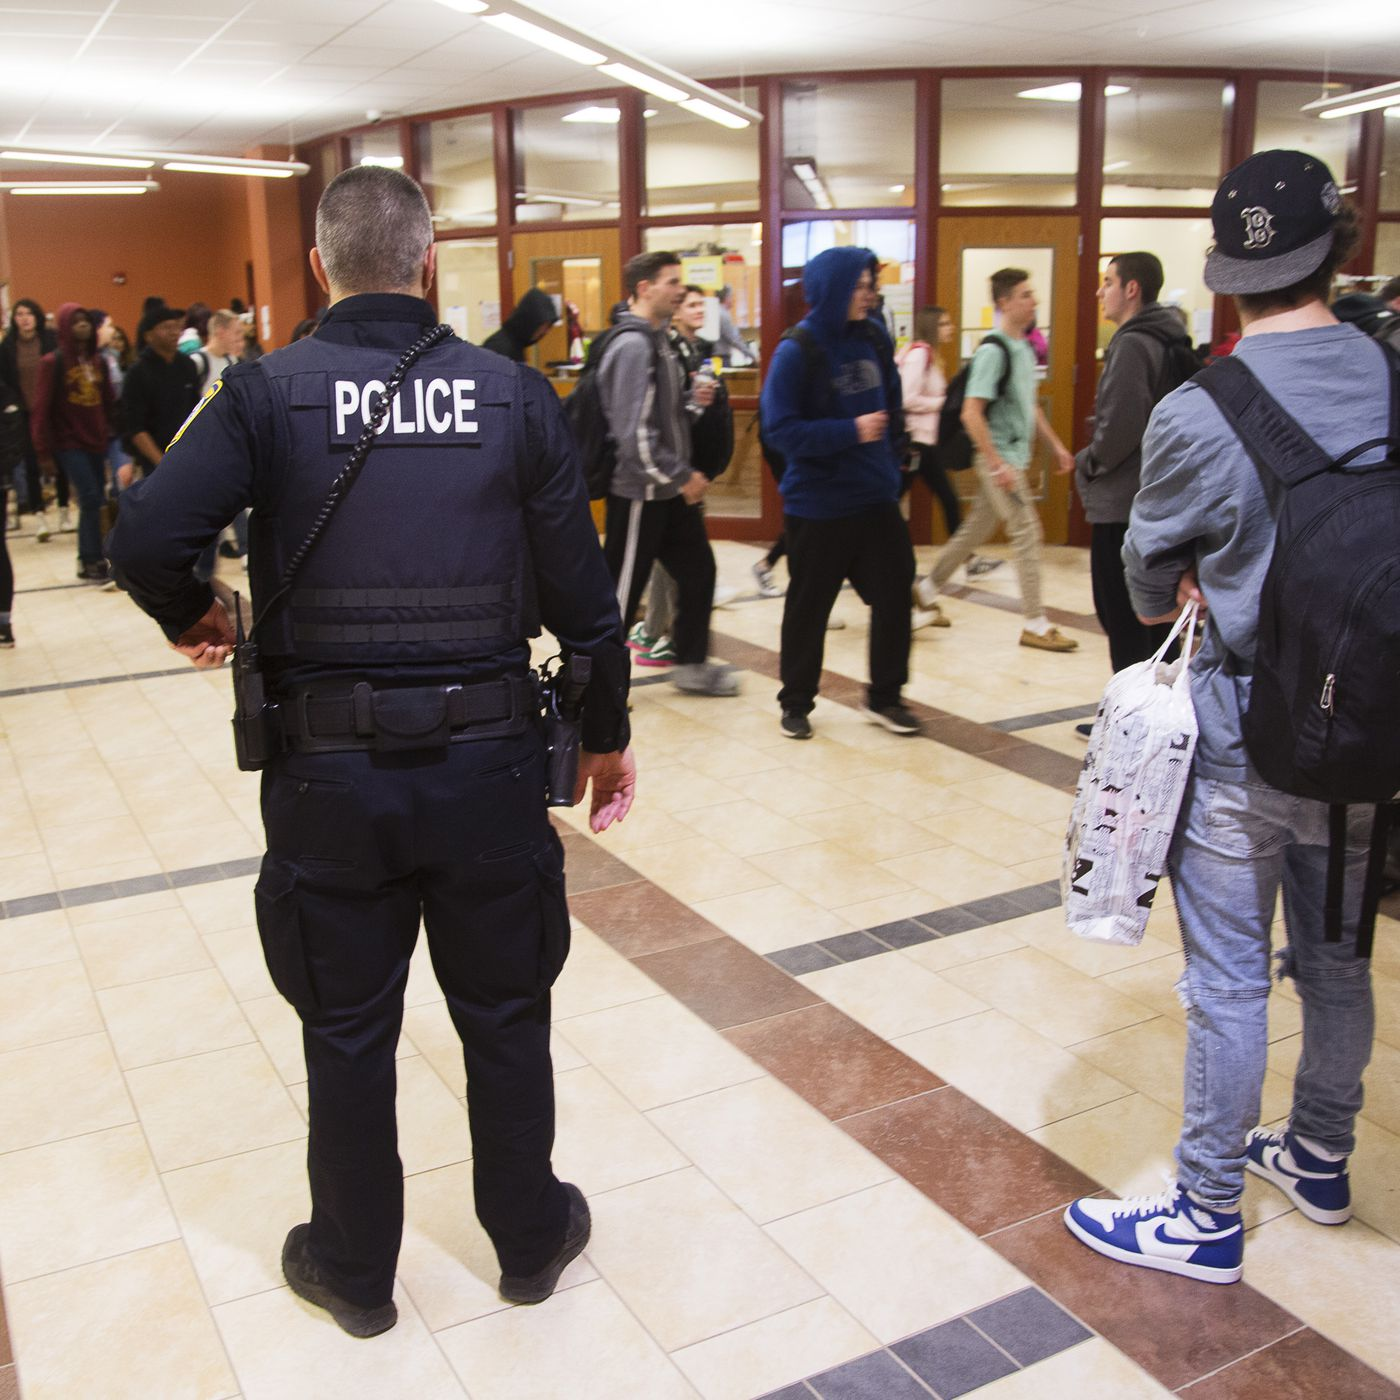 Why civil rights groups are calling for police-free schools